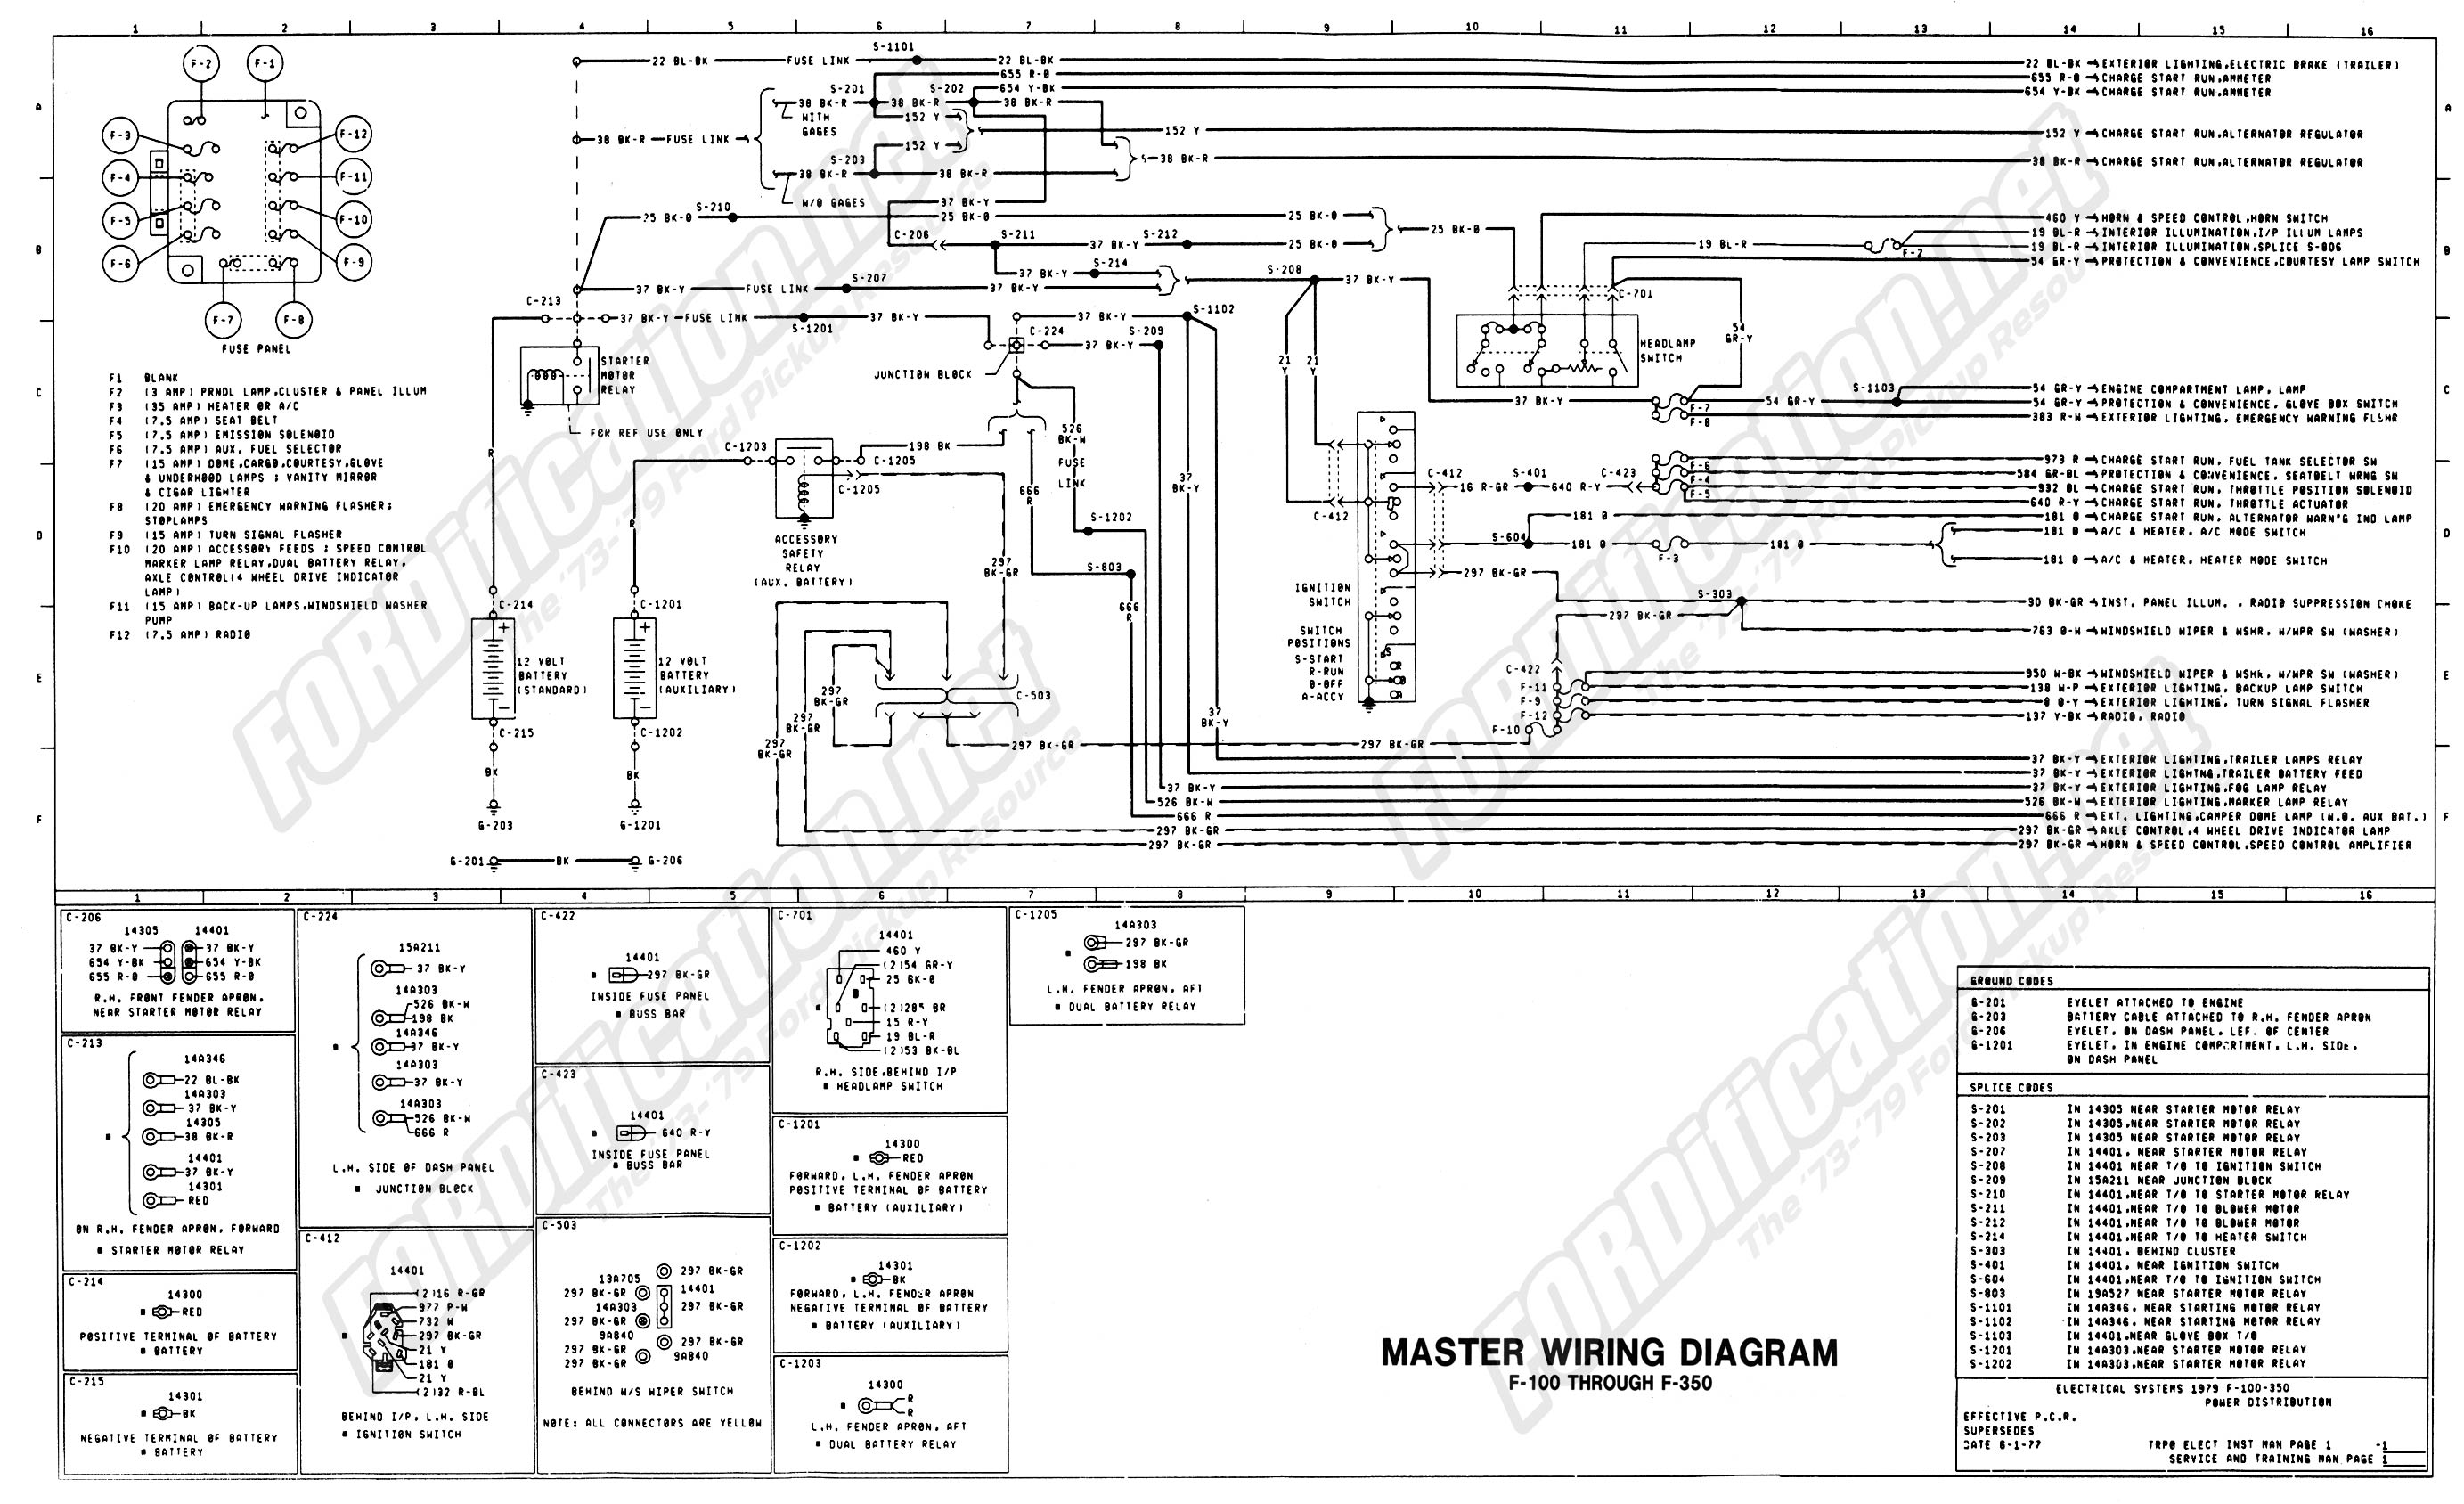 wiring_79master_1of9 truck wiring diagram 1986 chevy truck wiring diagram \u2022 free wiring 1979 volvo 242 dl wiring diagram at aneh.co